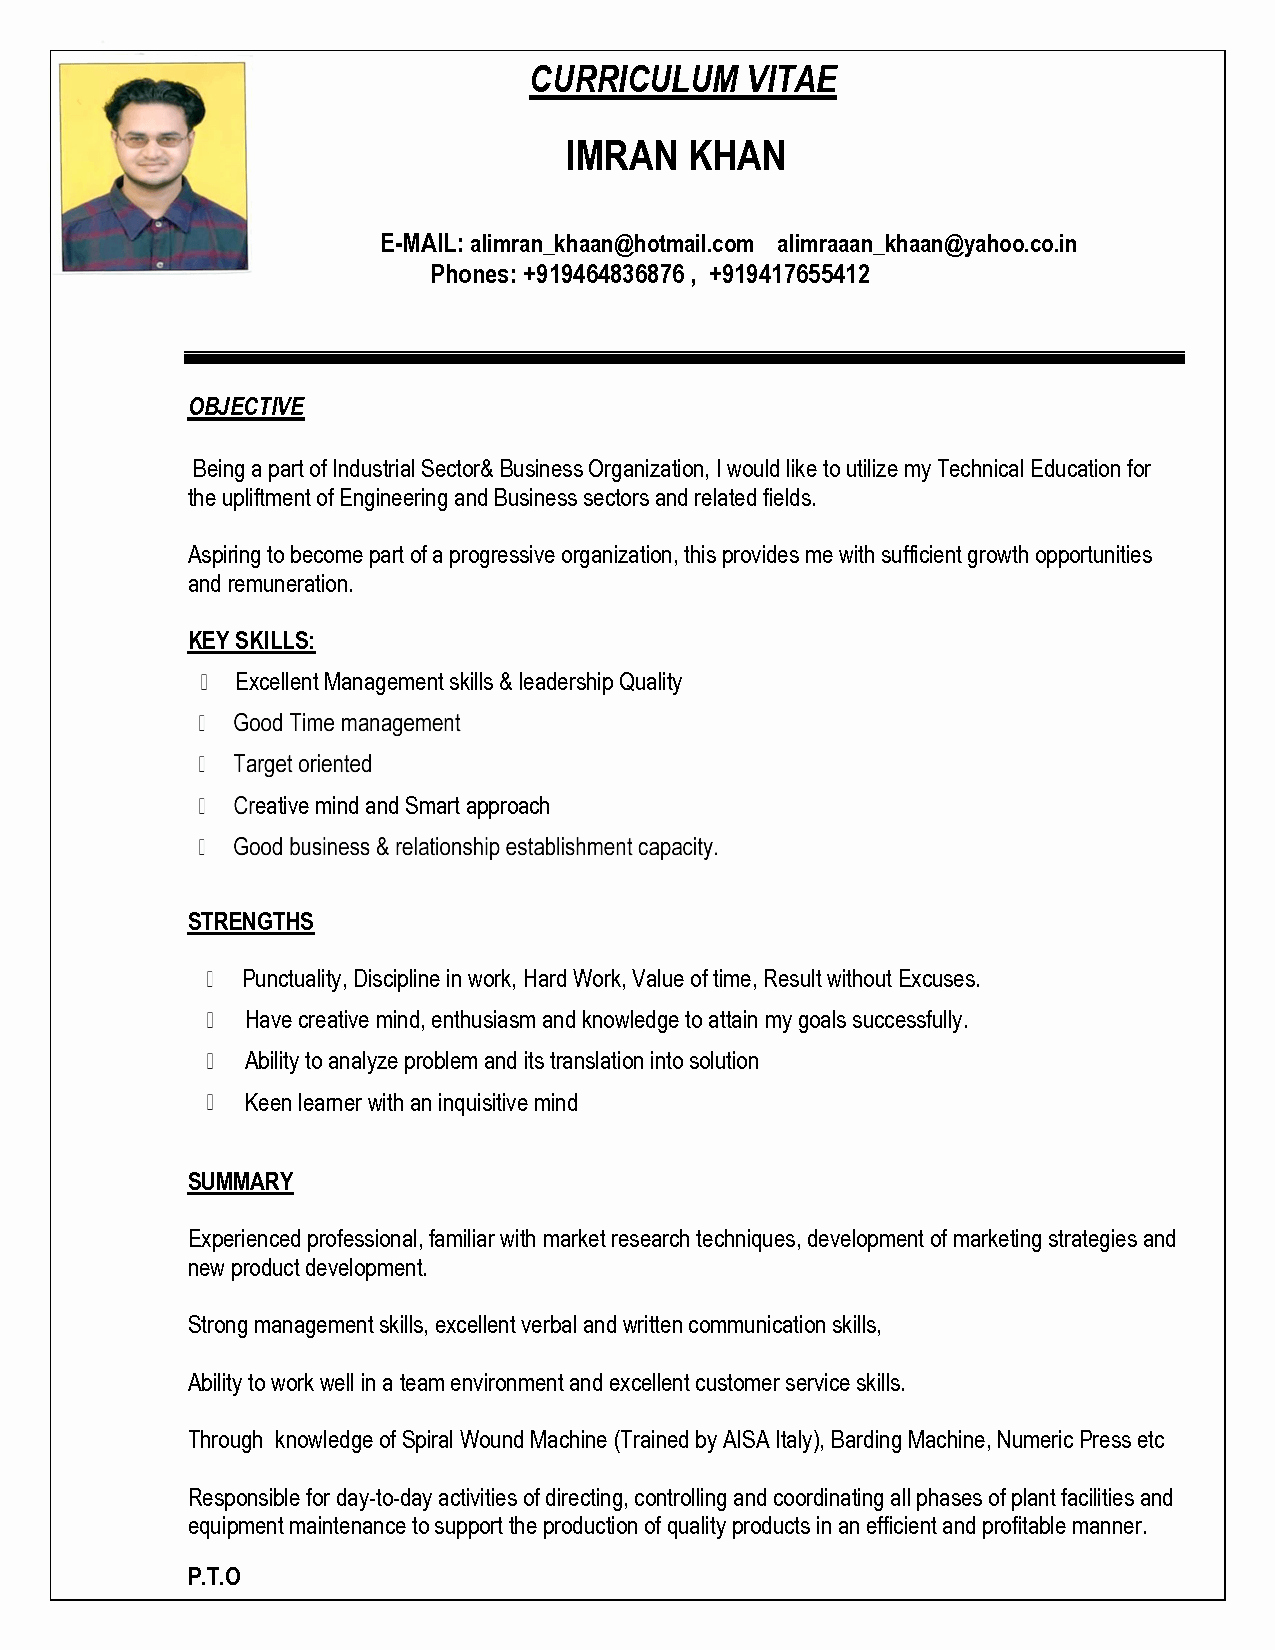 Sample Resume In Word format Inspirational Indian Resume format In Word File Free Download Bongdaao